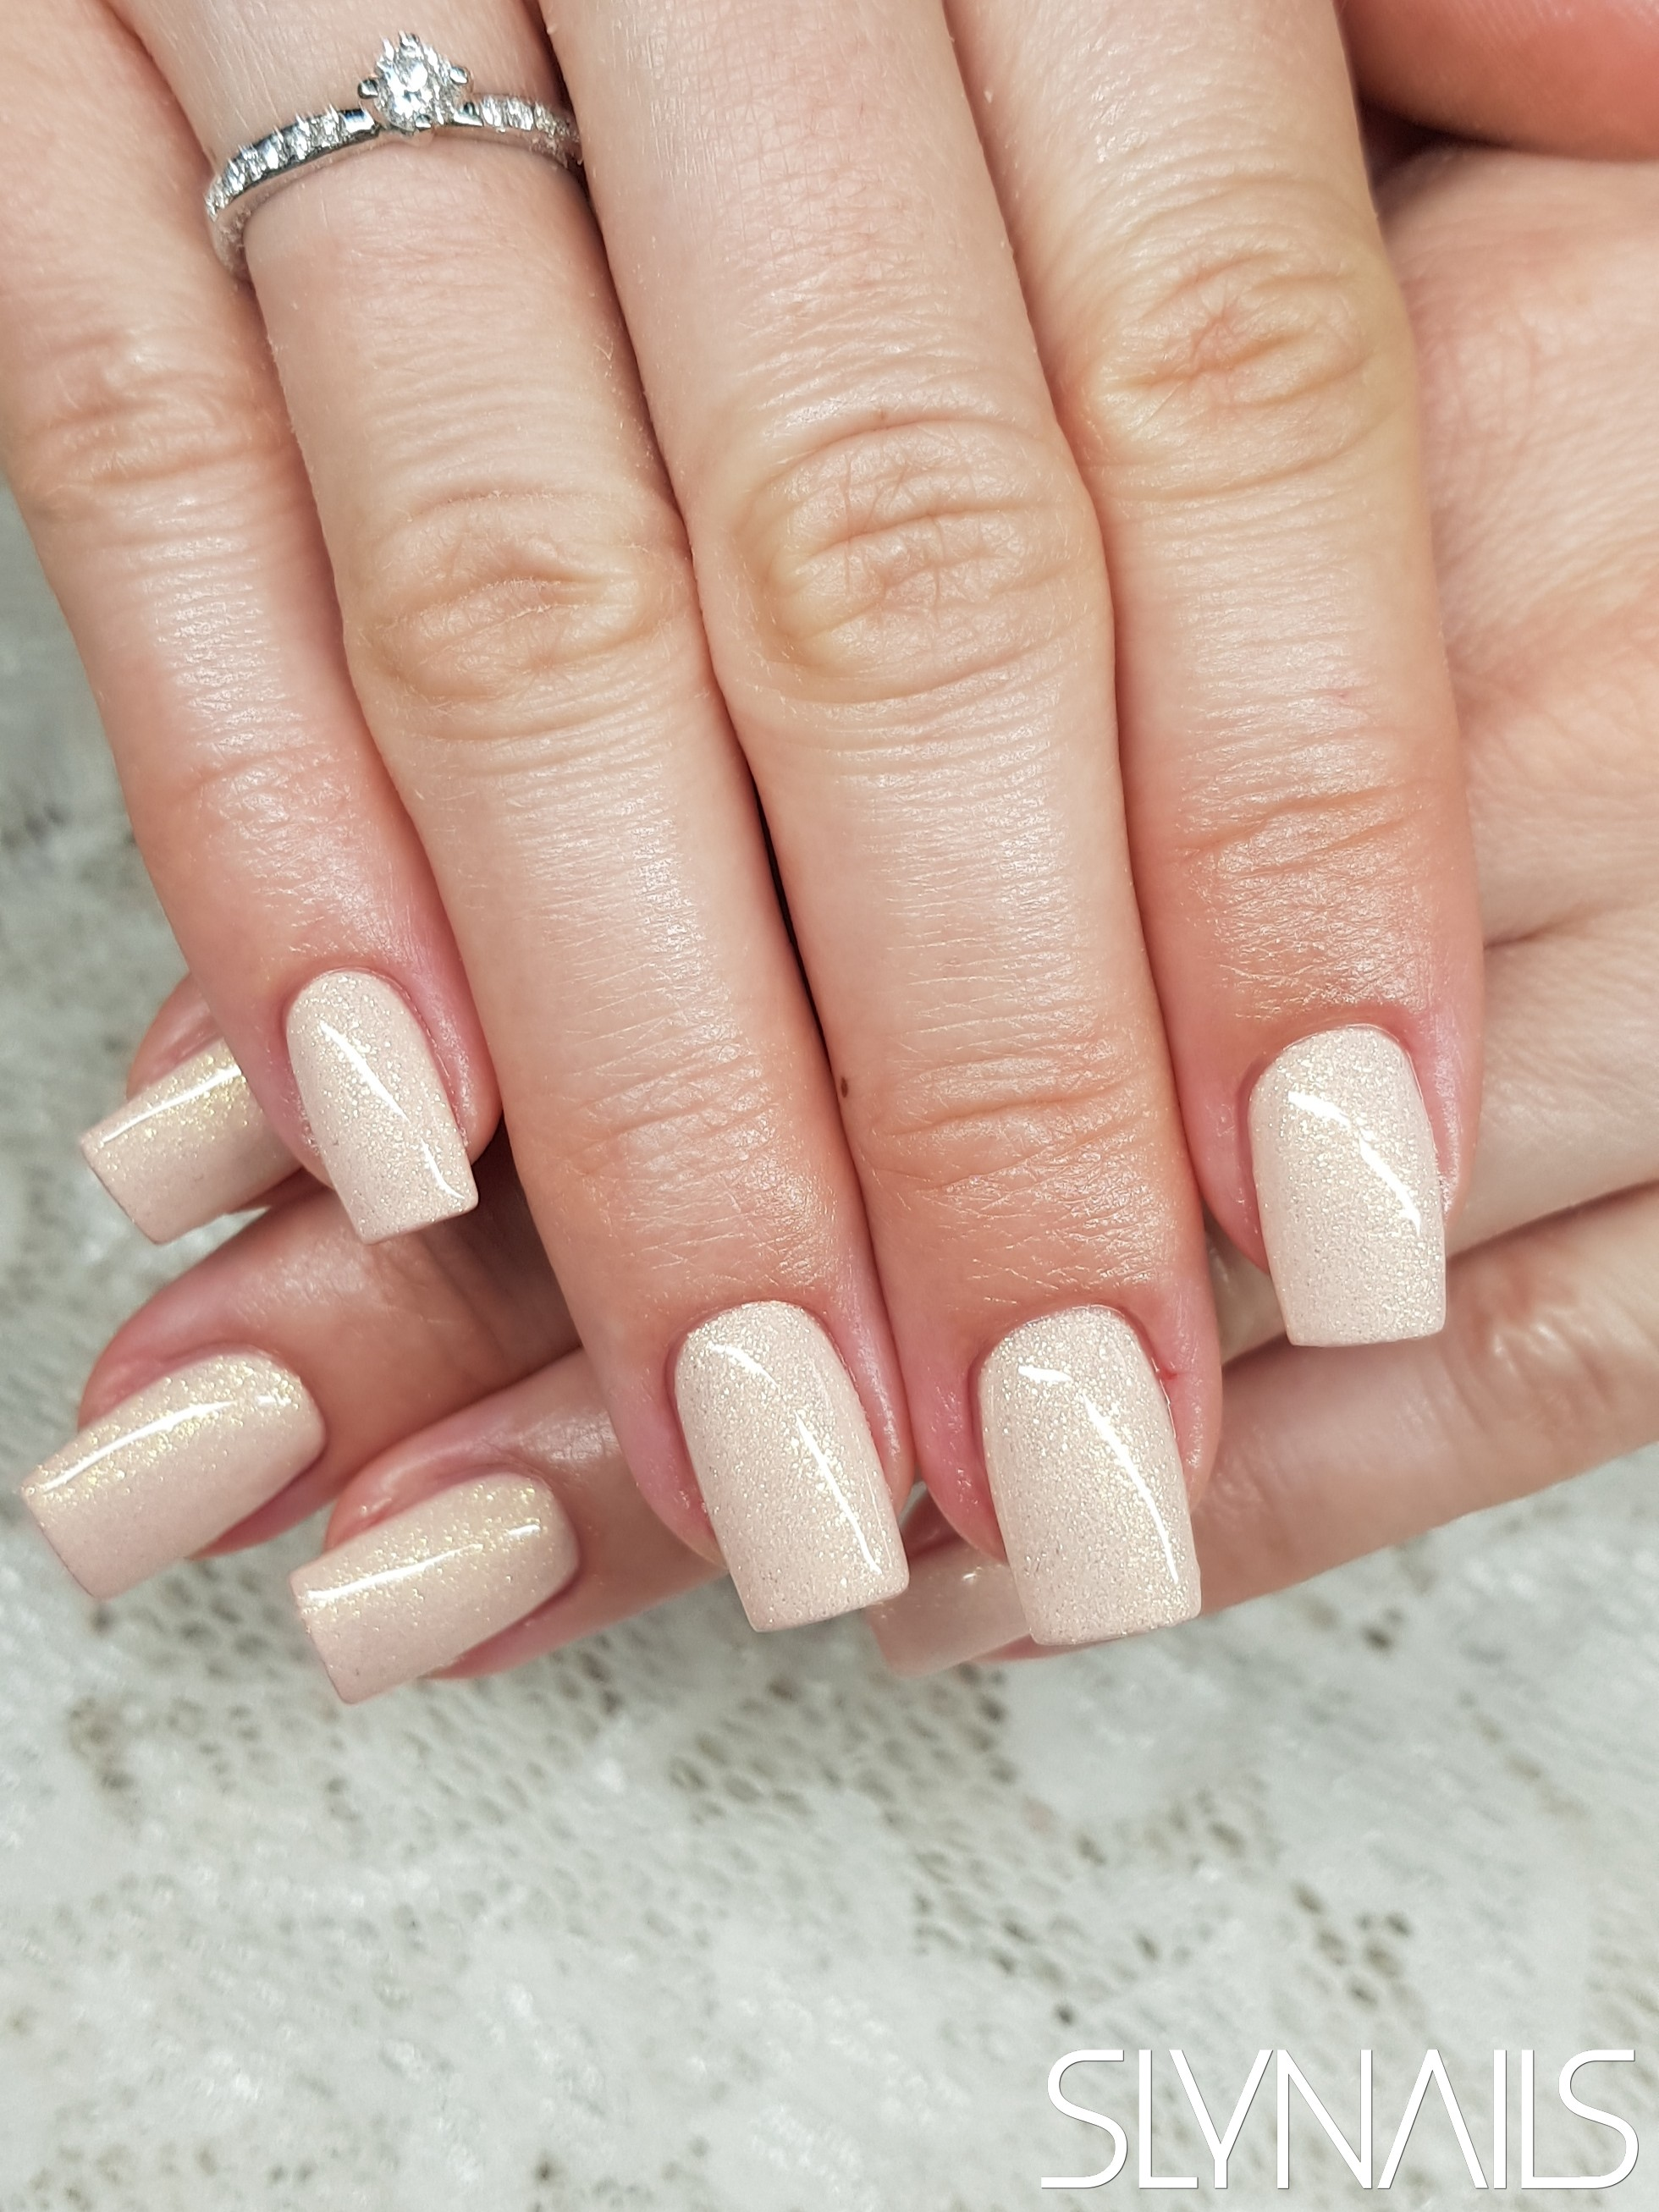 Nail extension, Nude, Square, One color, Without decoration